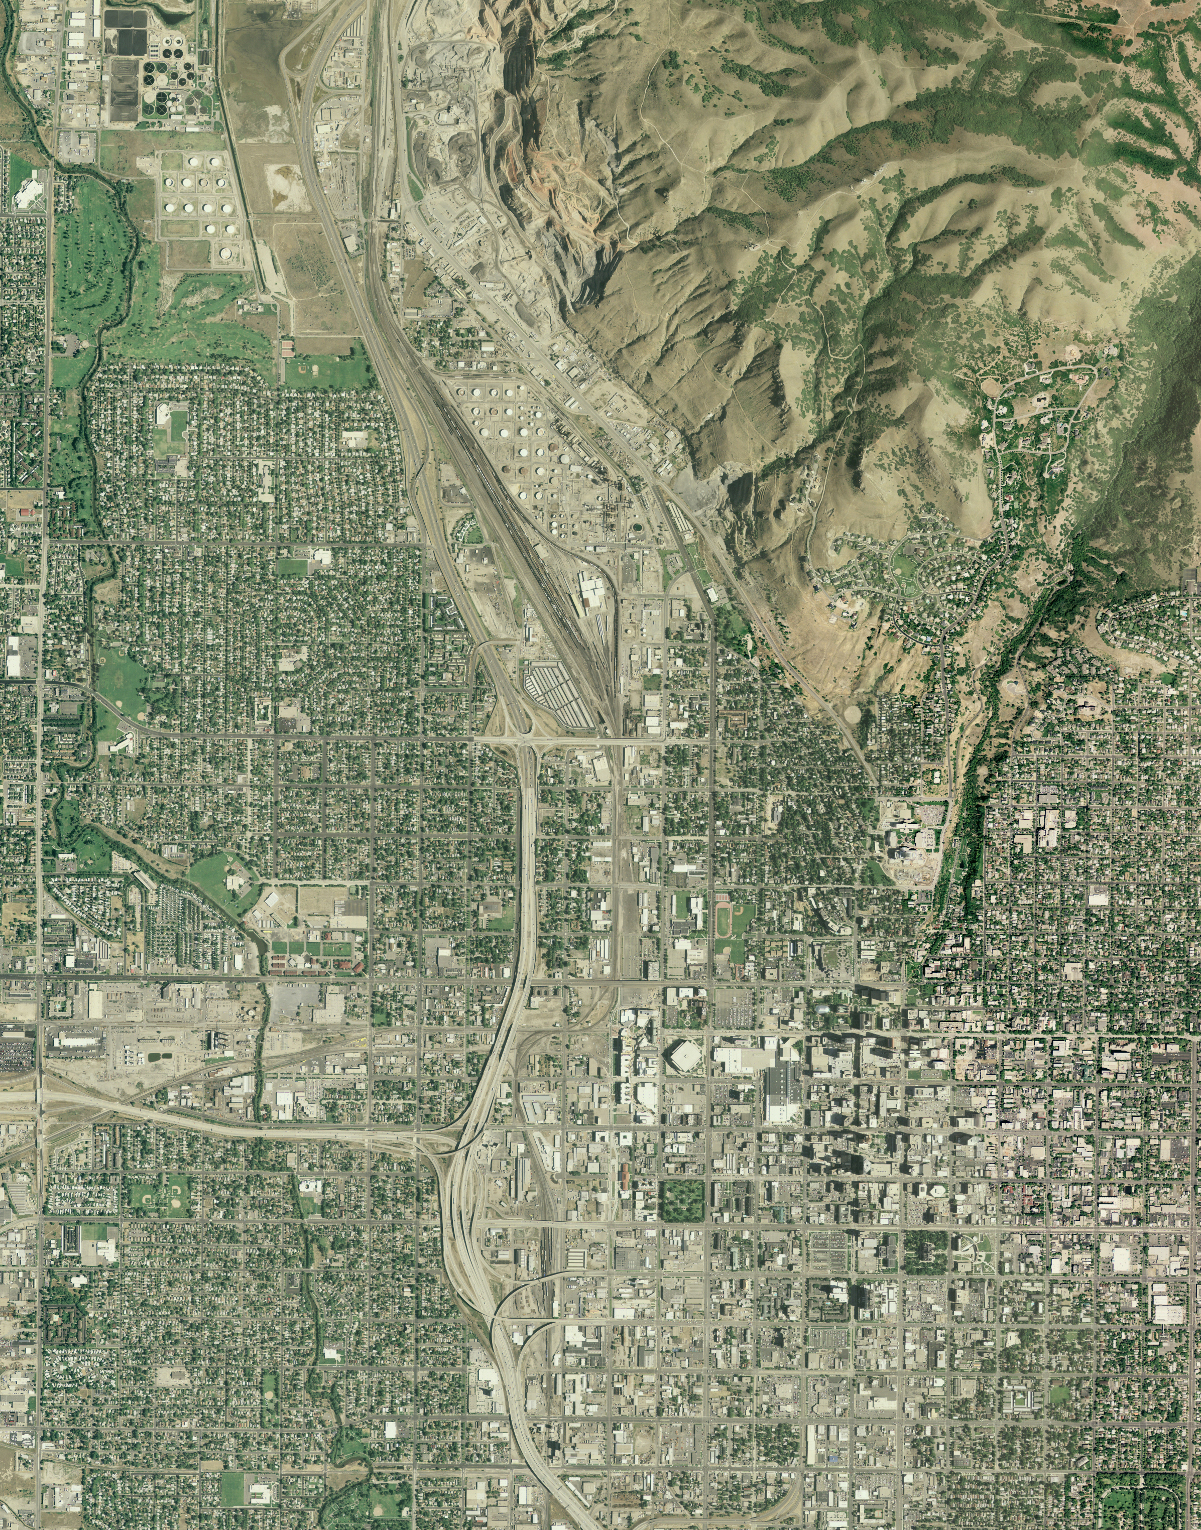 National Agriculture Imagery Program JPEG2000 image of Salt Lake City, Utah.